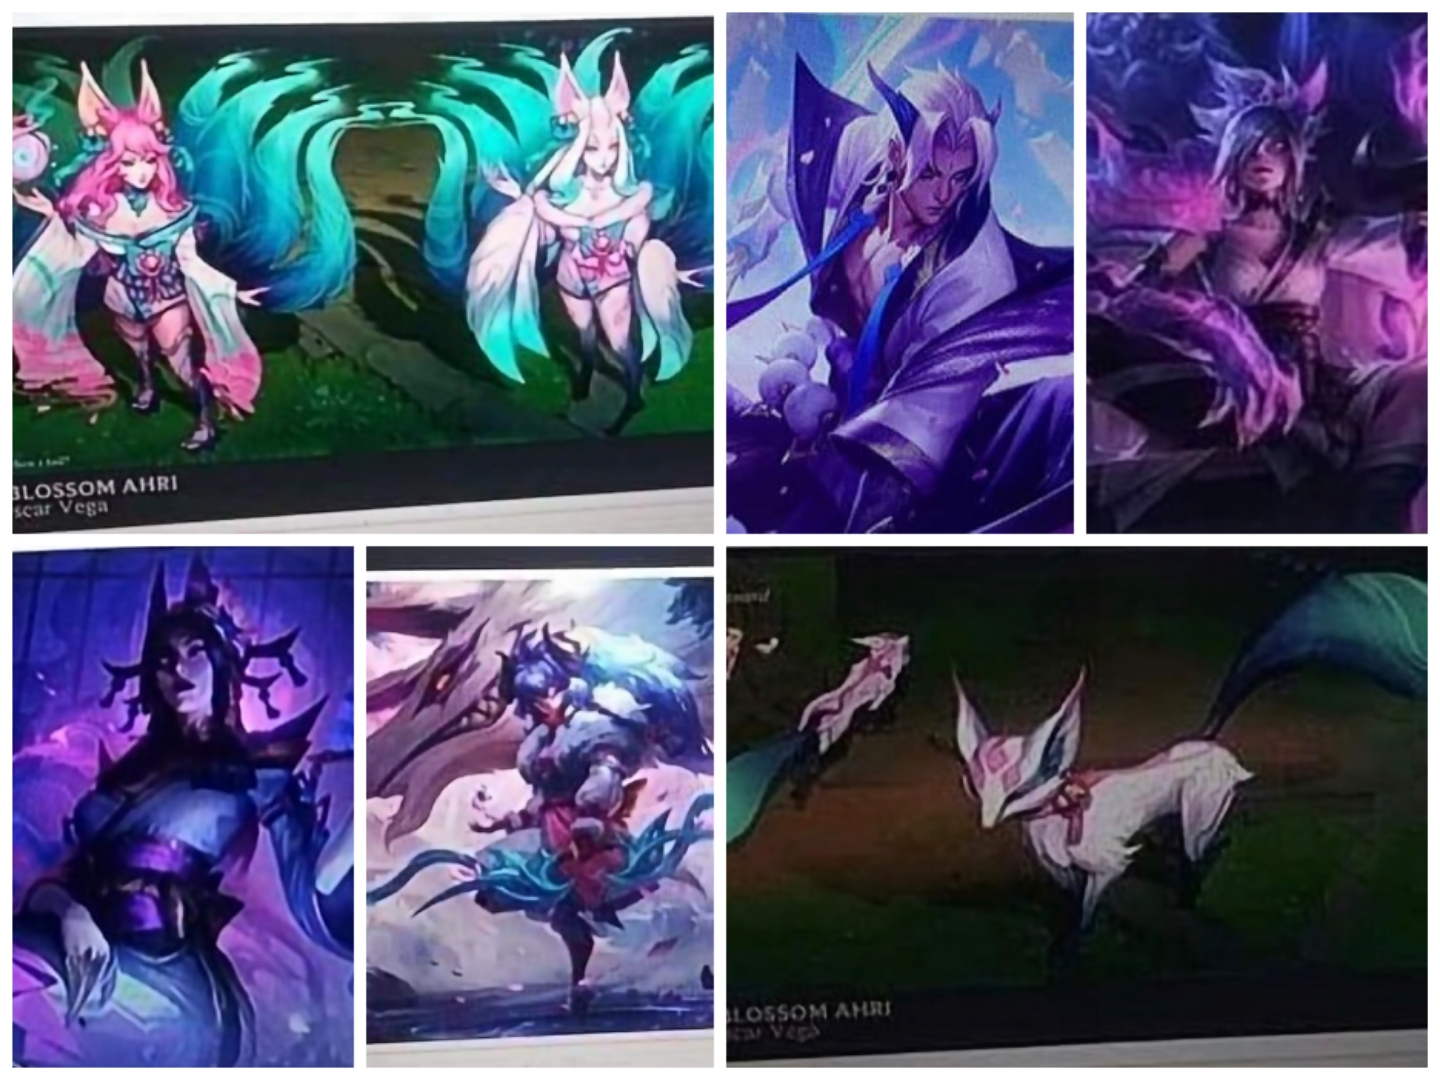 Leaked Spirit Blossom Yone, Riven, Ahri, Cassiopeia and Kindred